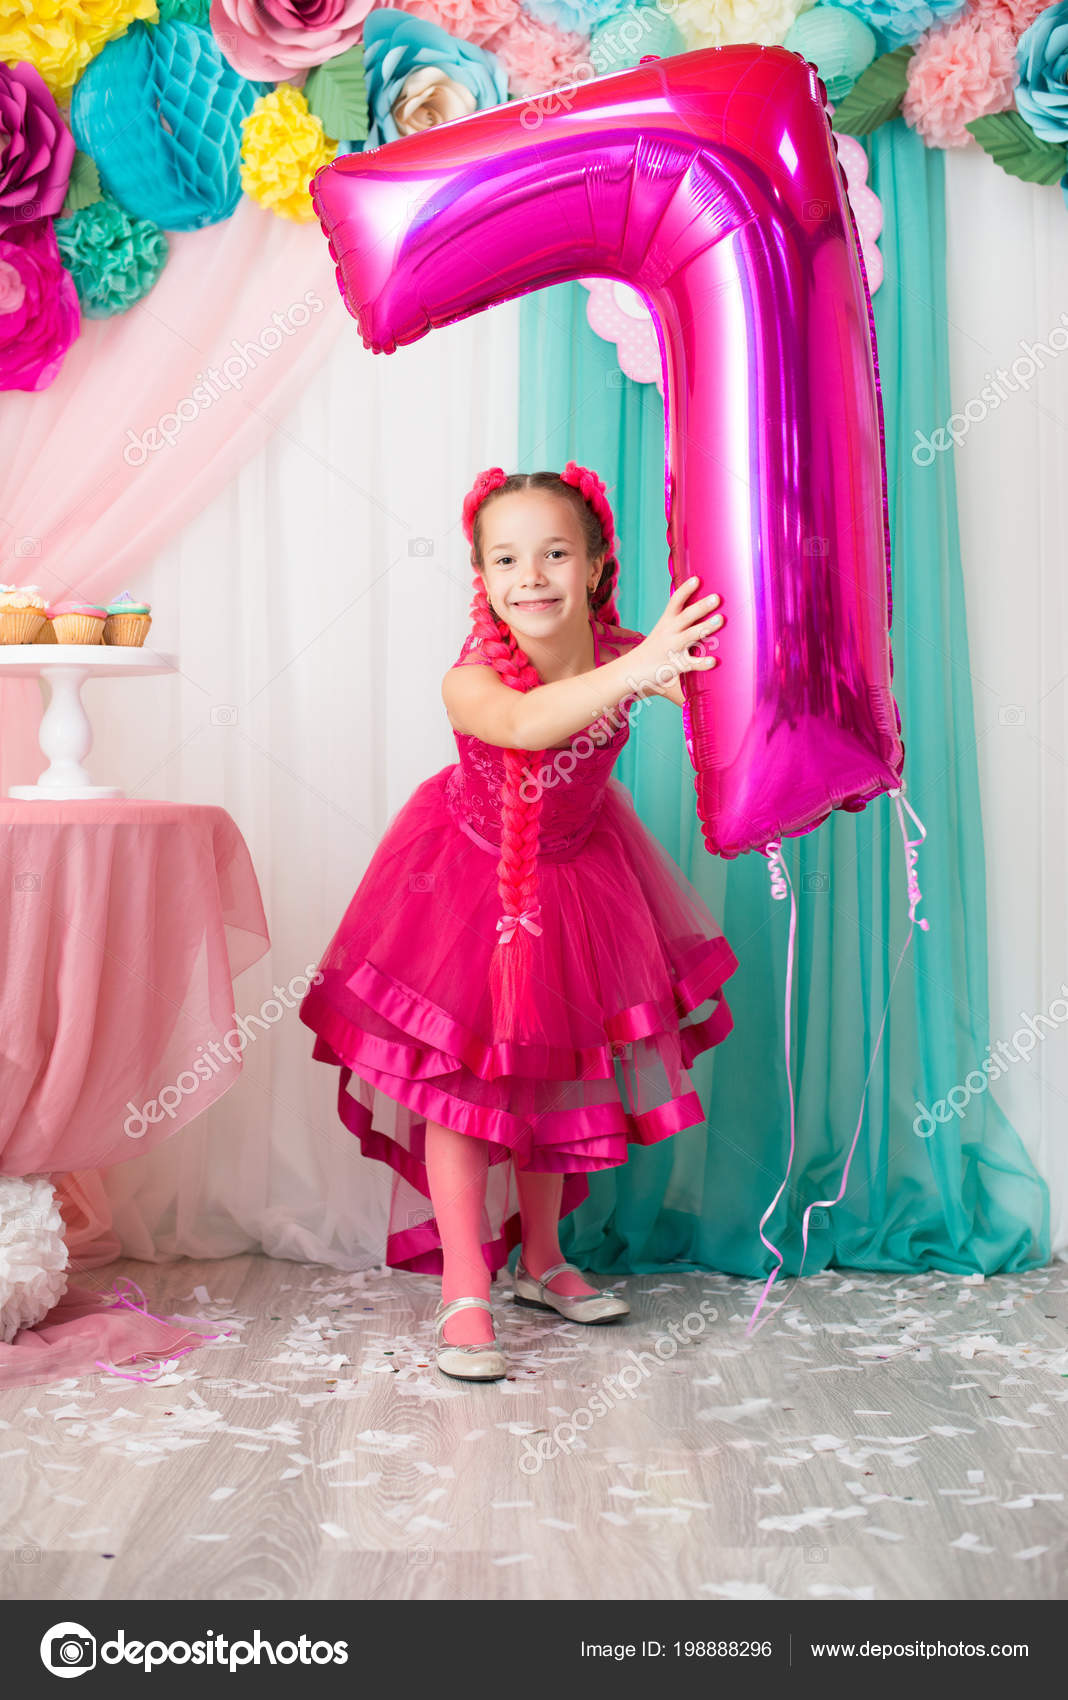 Beautiful Young Girl Celebrating Her Birthday Keeps Balloons Hands Stock Photo